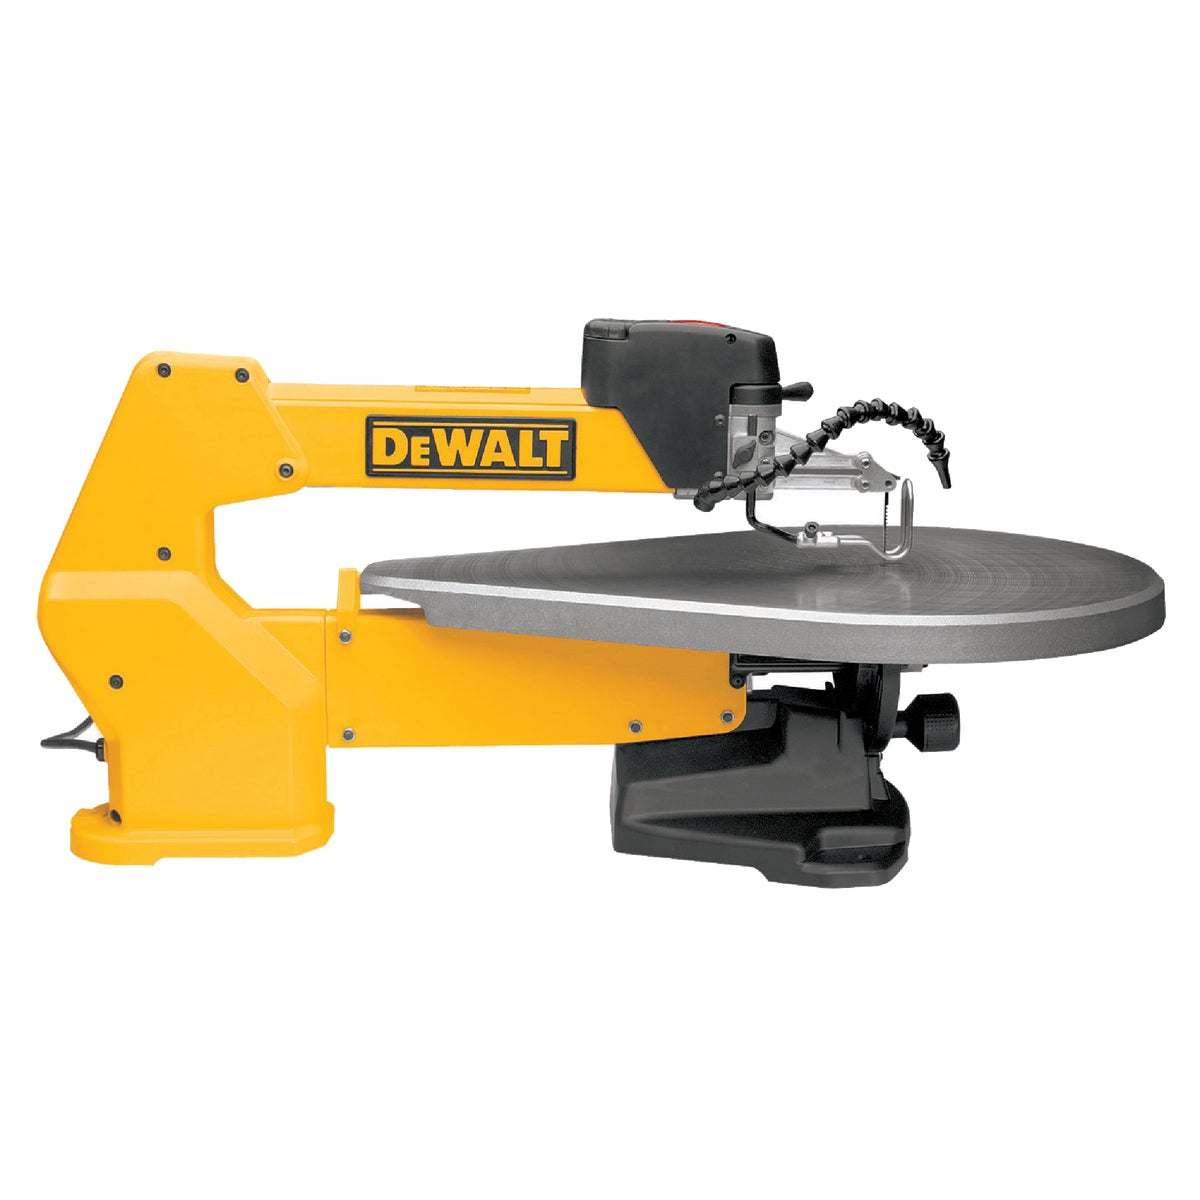 "20"" VS SCROLL SAW - DW788 by DeWalt"